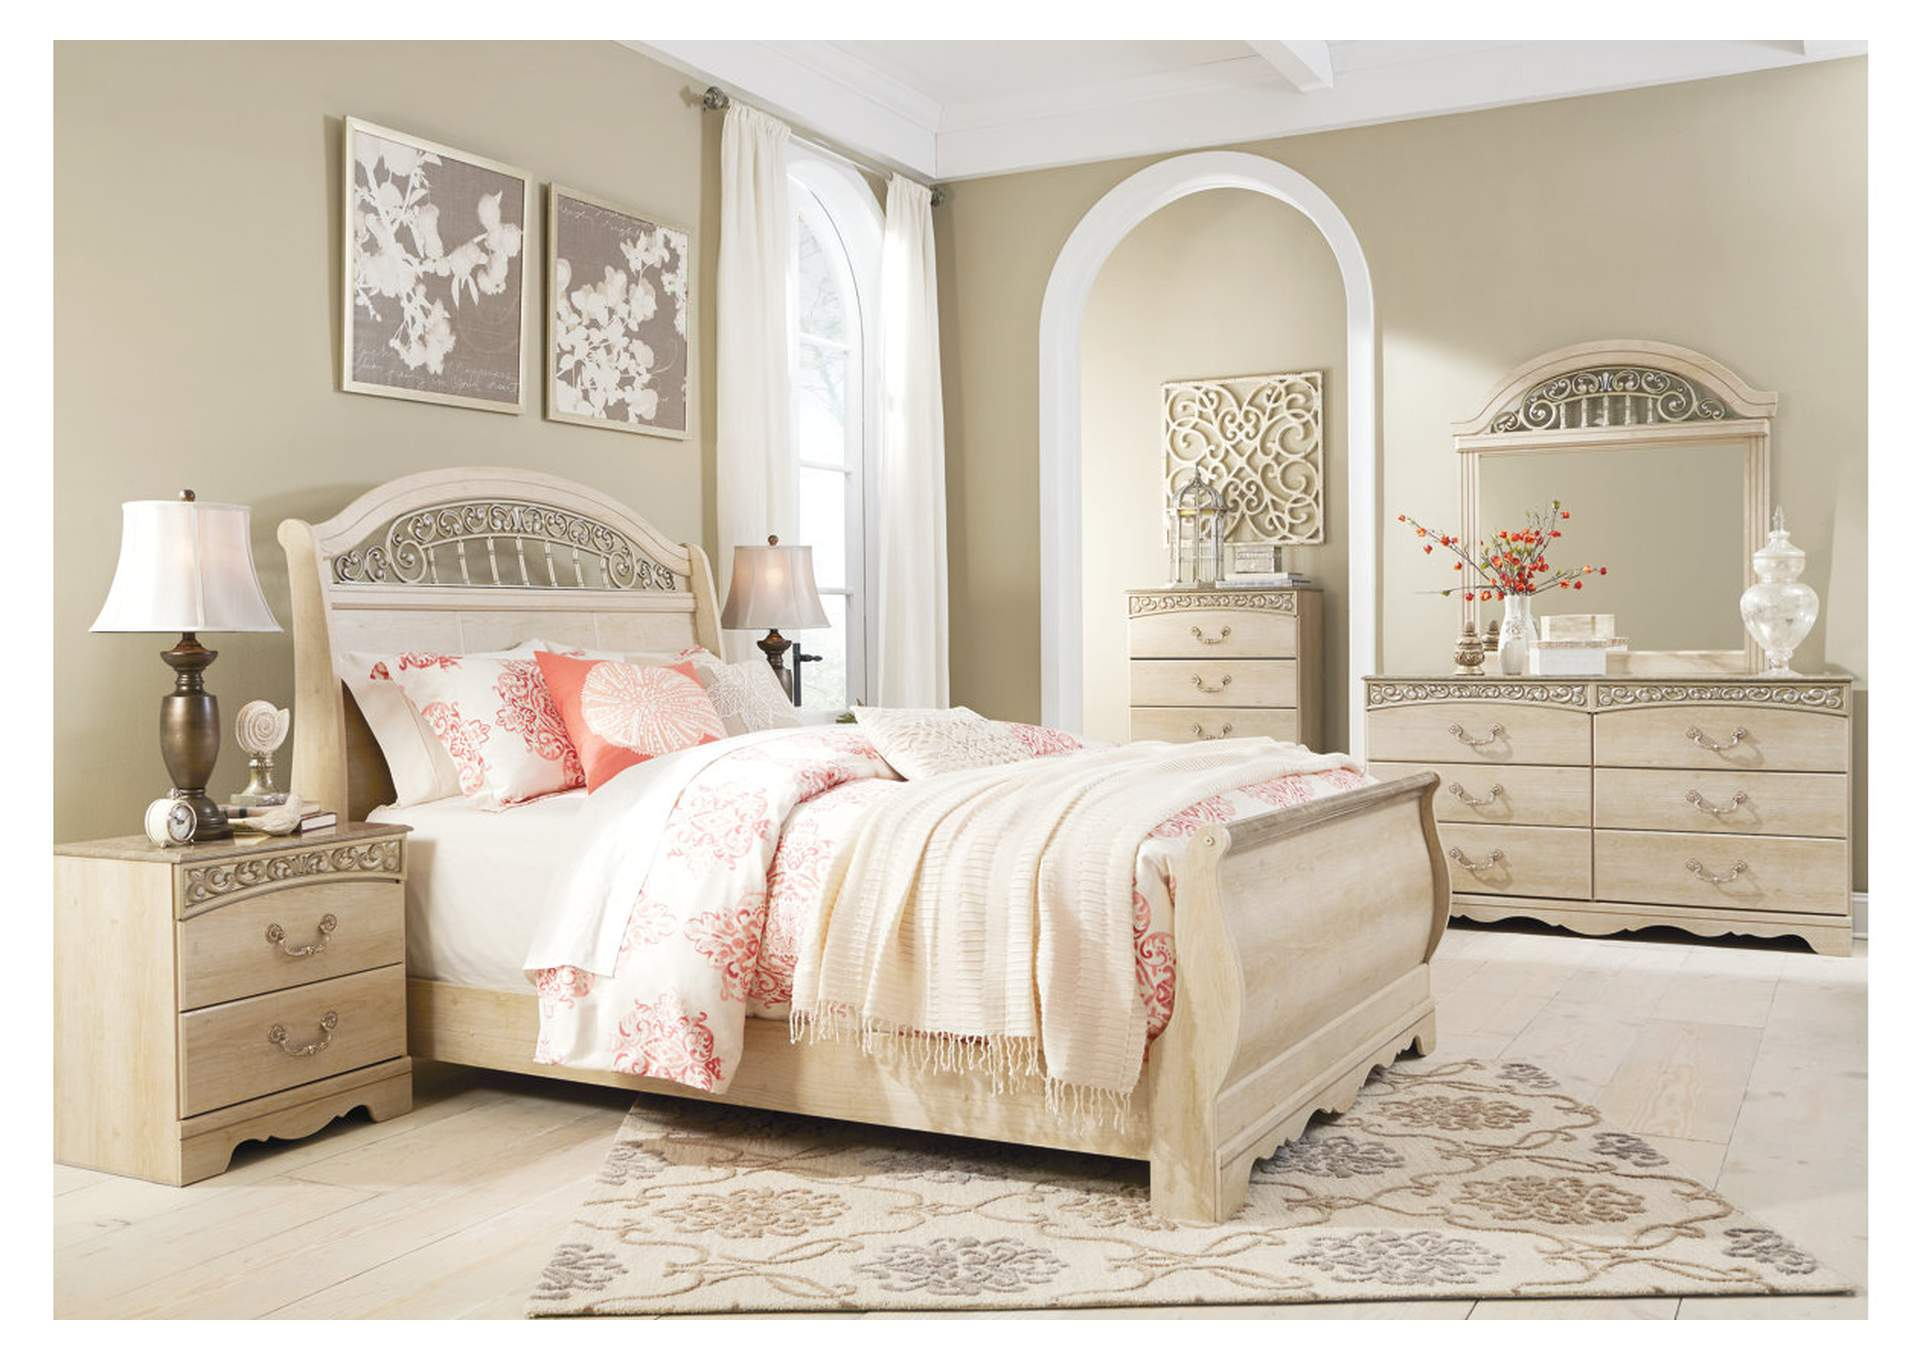 Catalina Antique White Queen Sleigh Bed w/Dresser, Mirror, Drawer Chest & Nightstand,Signature Design by Ashley